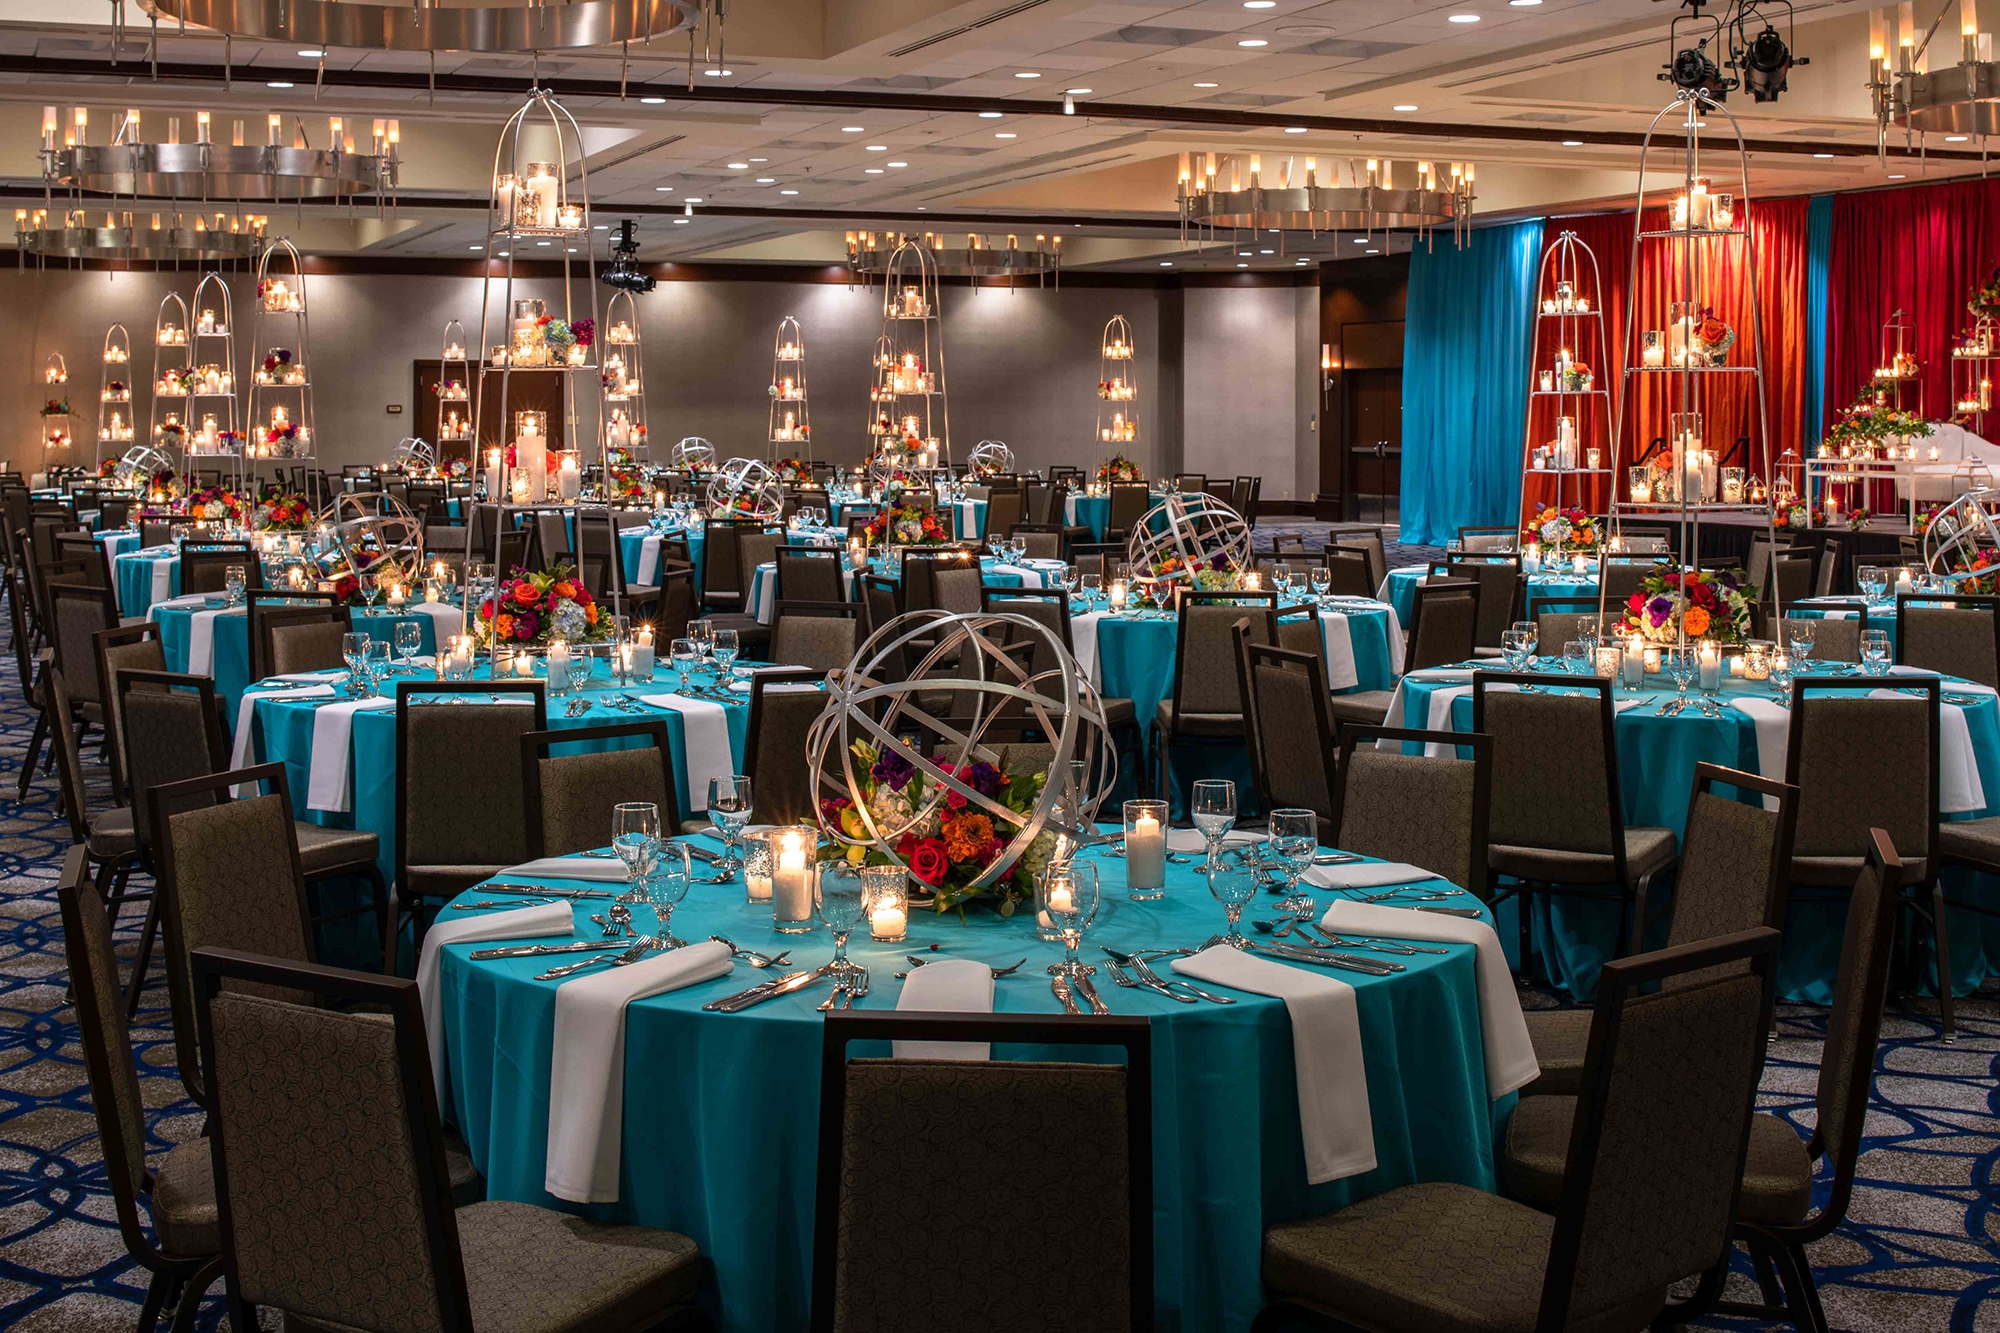 Hilton_Bellevue_Meeting_Grand_Ballroom_Wedding-0002.jpg